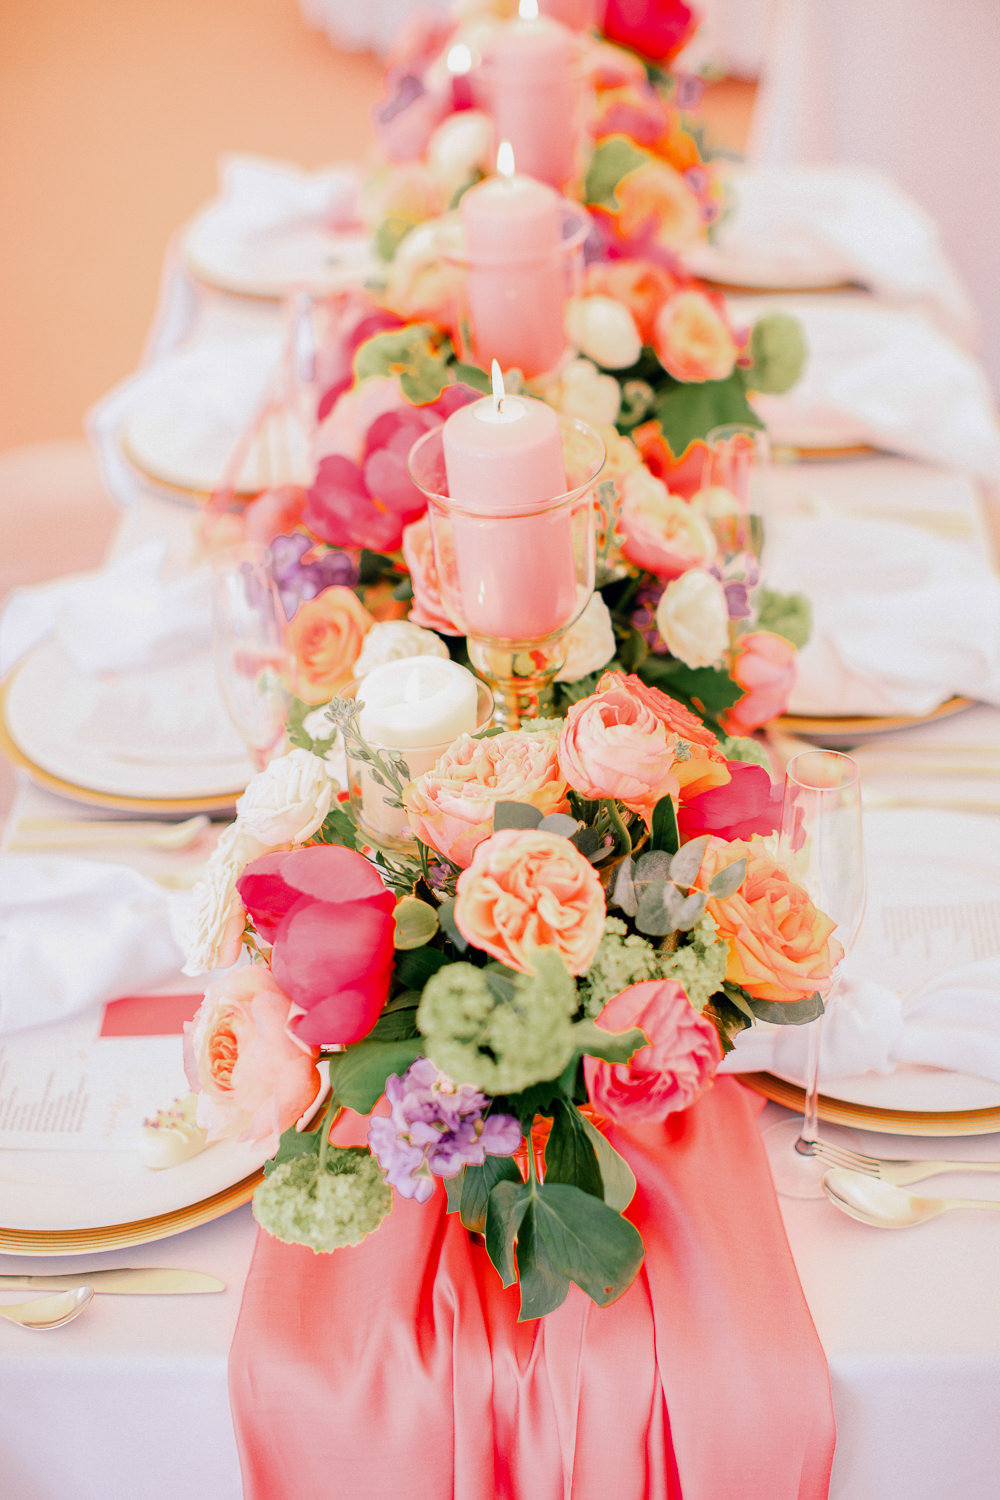 Flowers Peony Peonies Rose Vase Table Centrpiece Candles Coral Peach Wedding Ideas Courtney Dee Photography